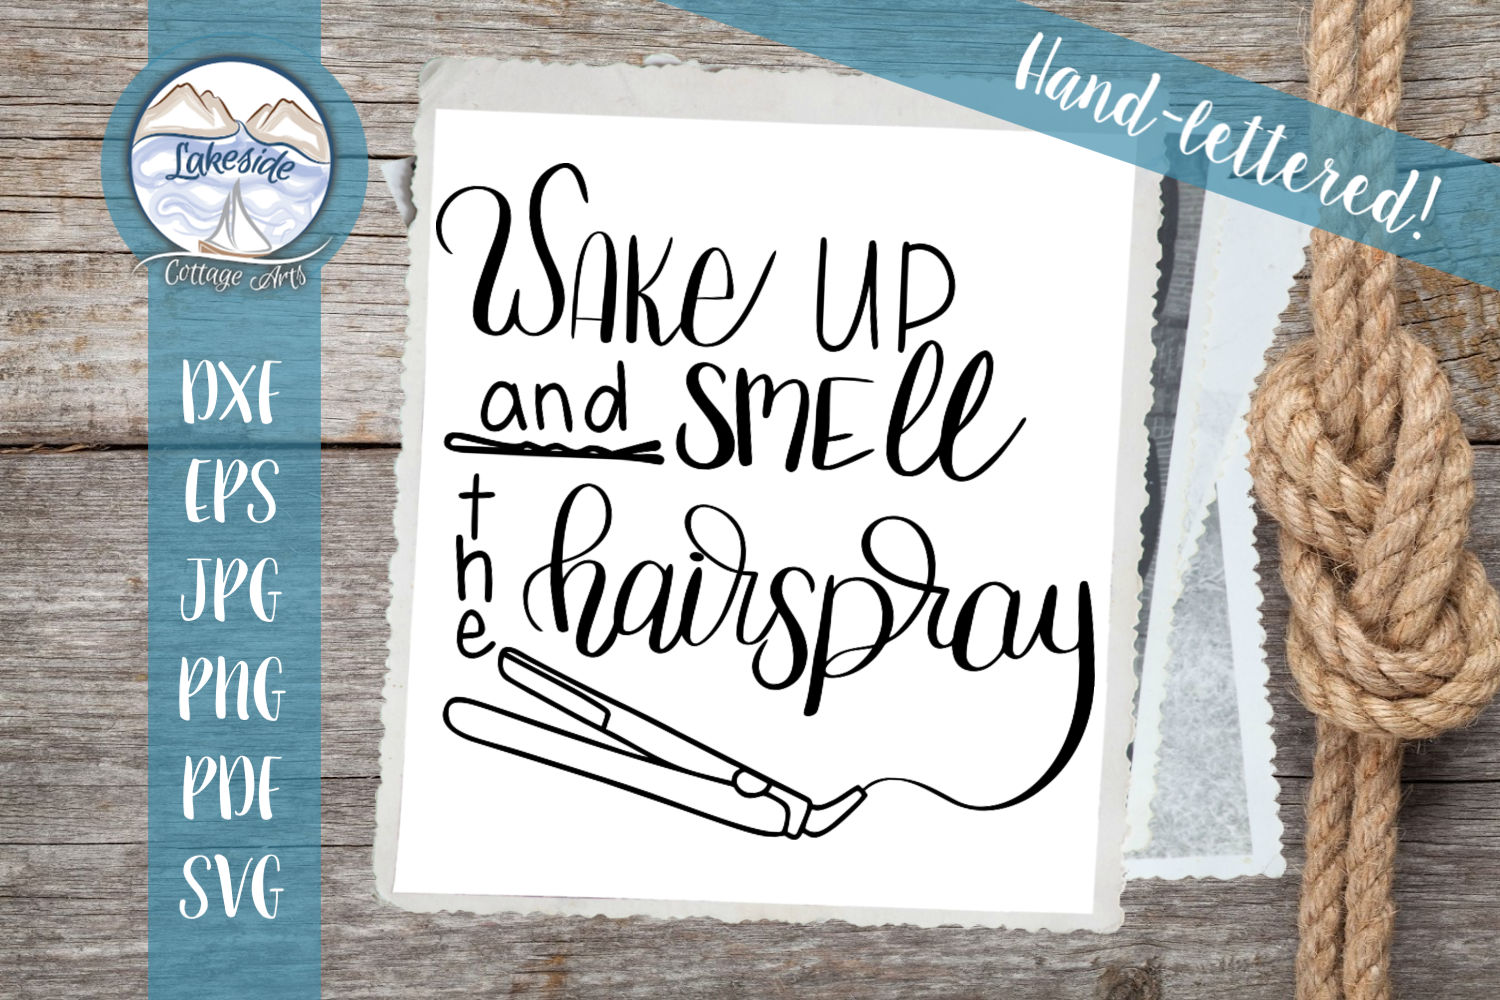 Wake Up and Smell the Hairspray Handl-ettered Hair SVG example image 1